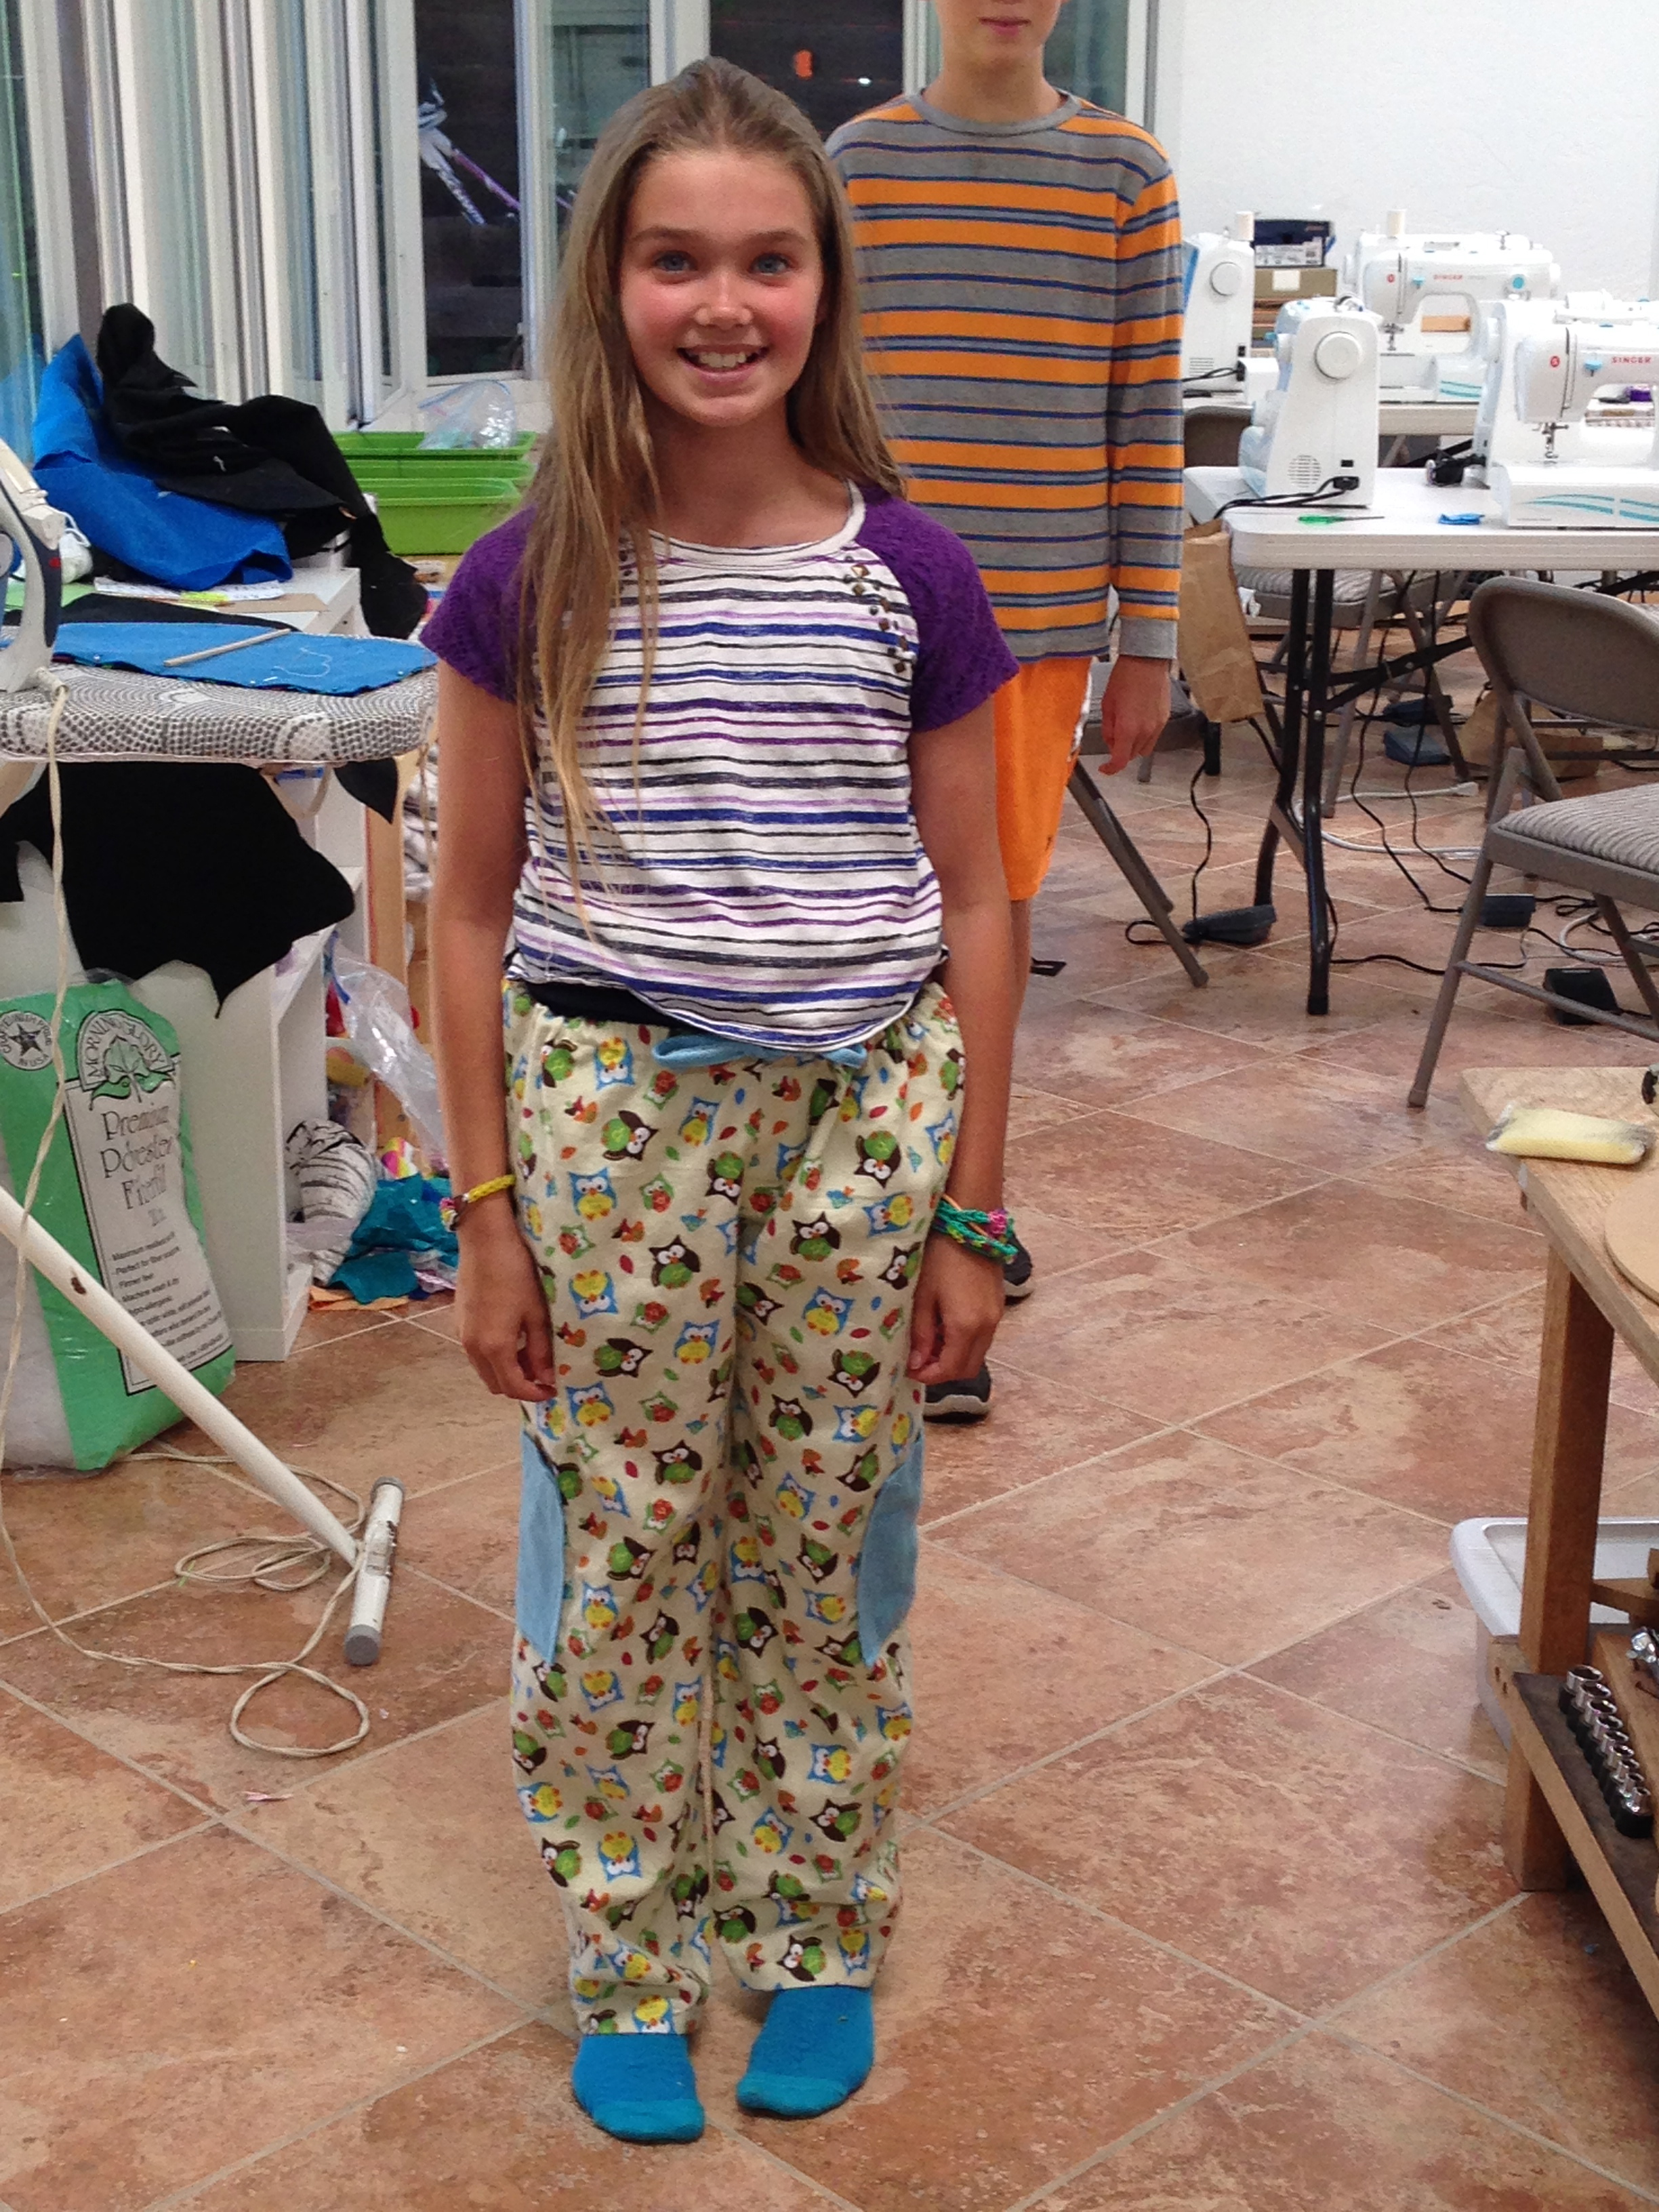 5th grader jammie pants.